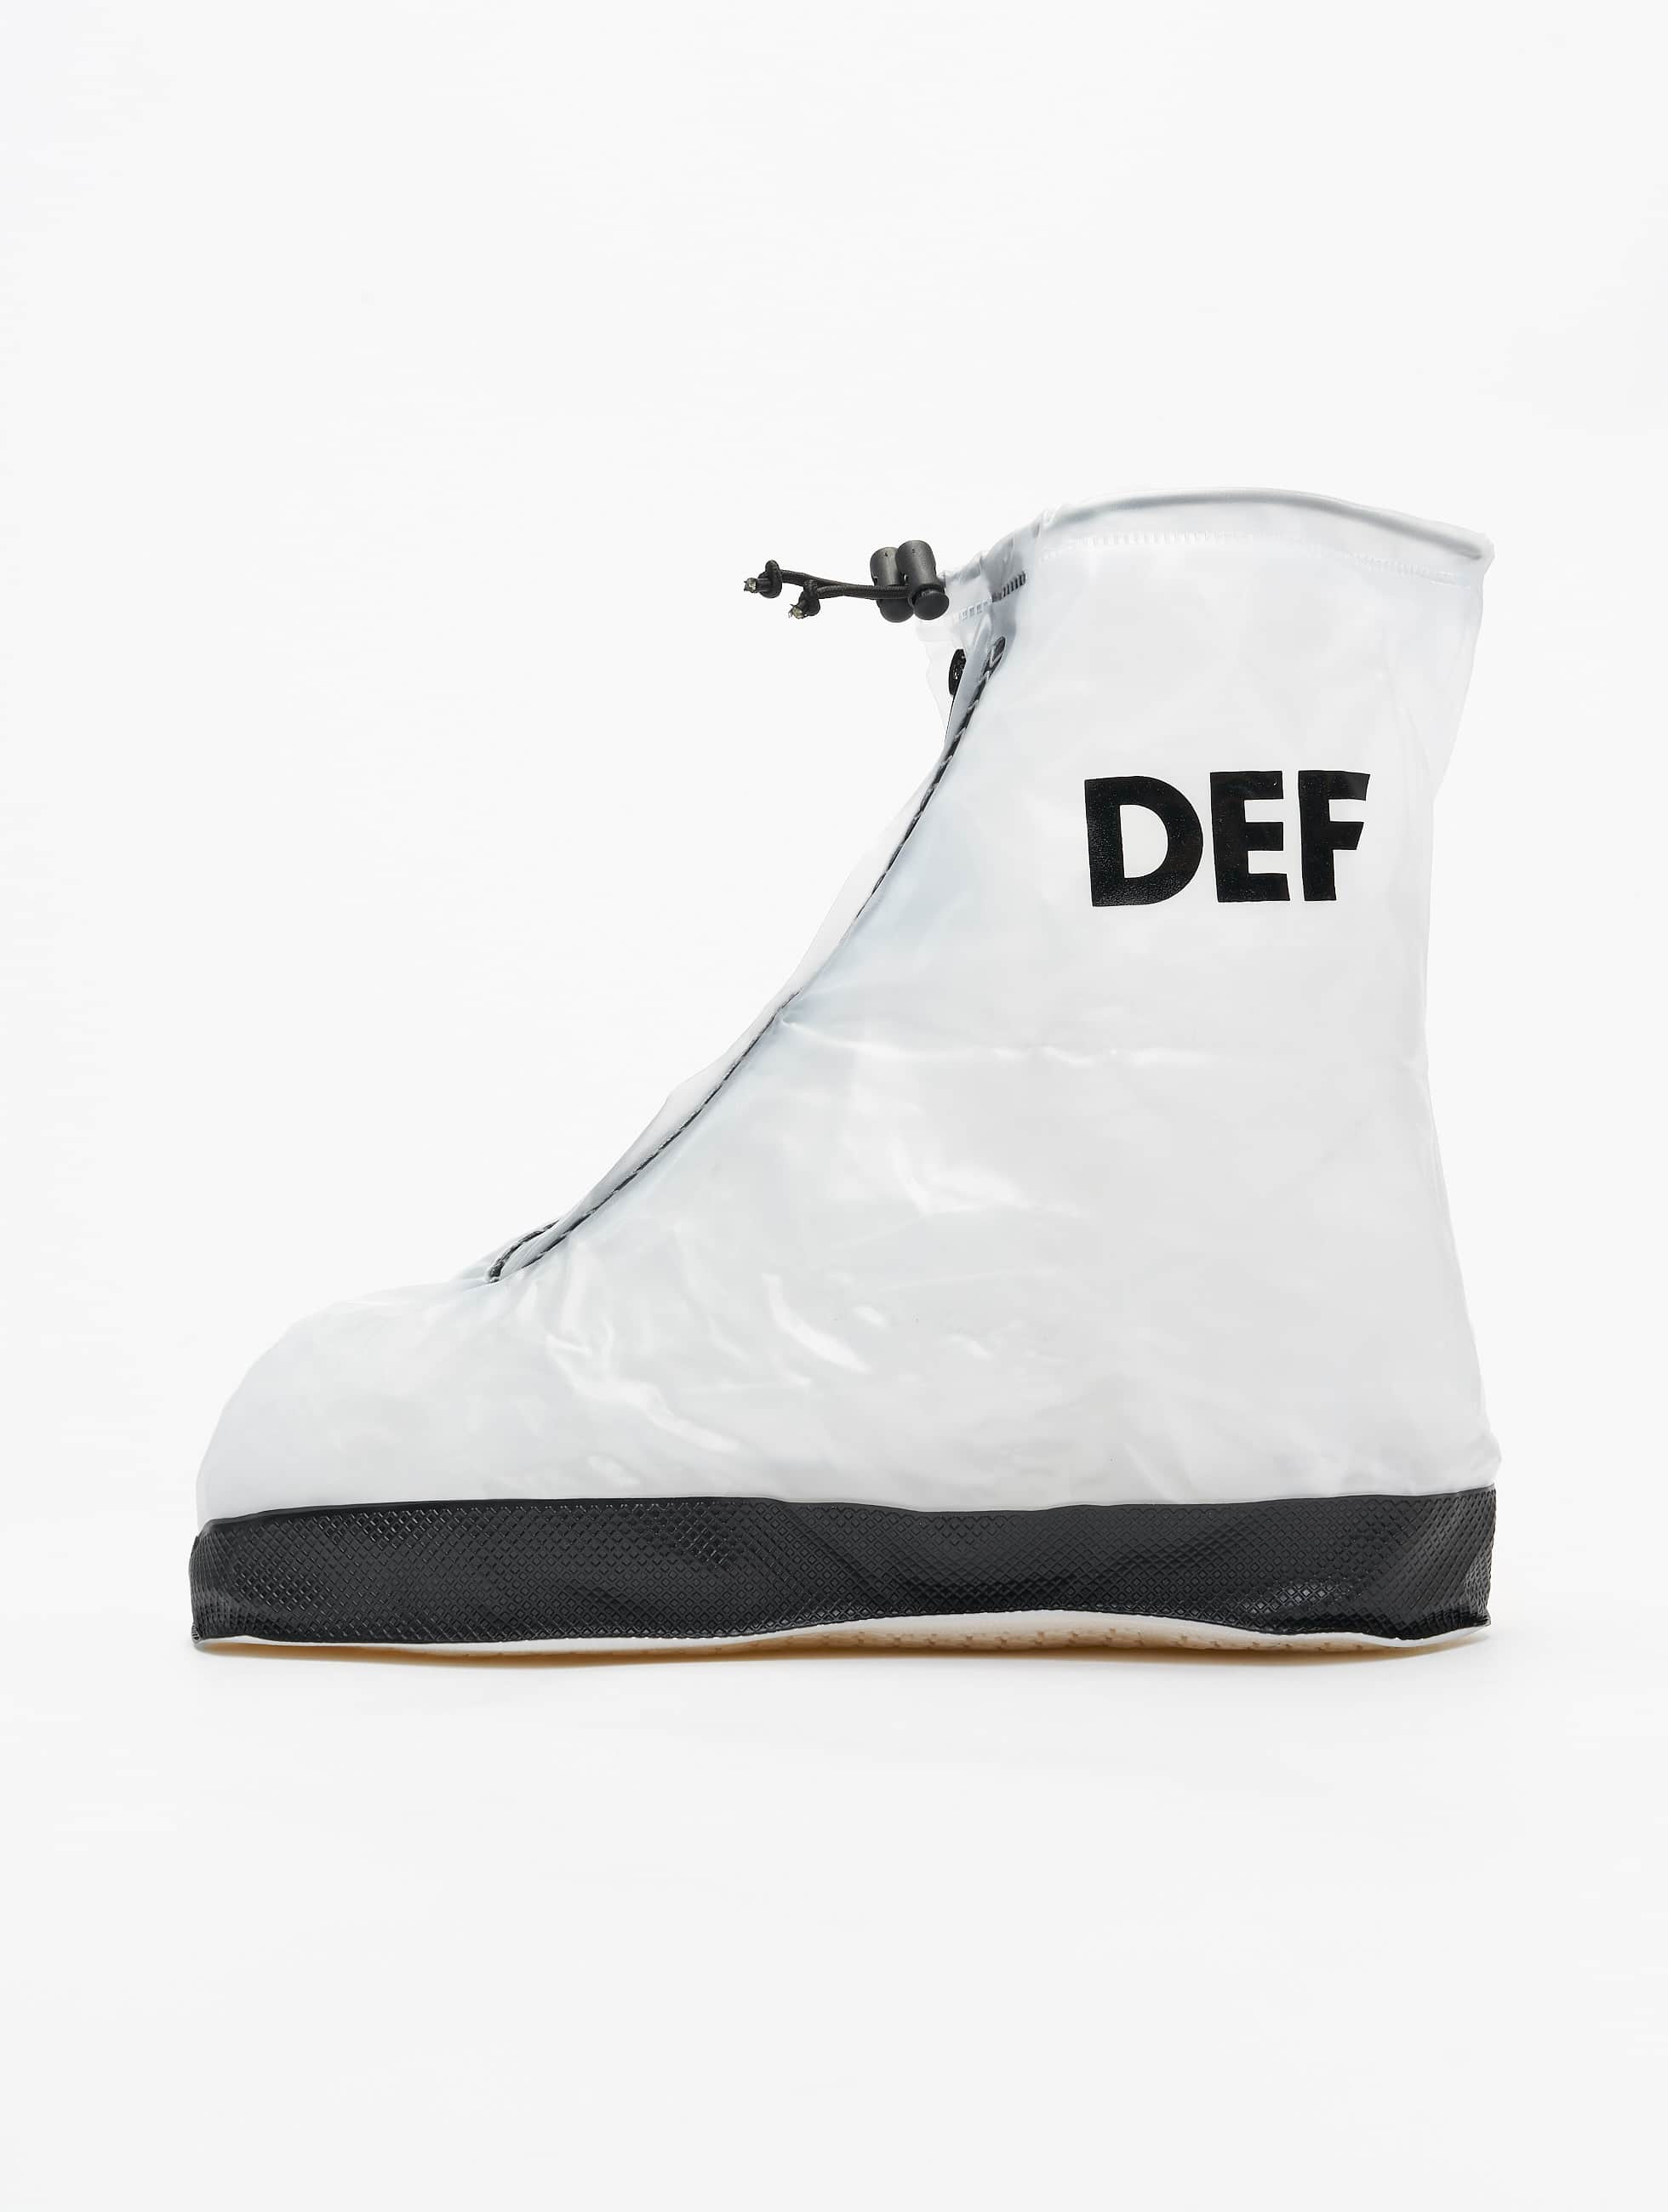 DEF / Shoe Care Rain in black 2XL (43-44)